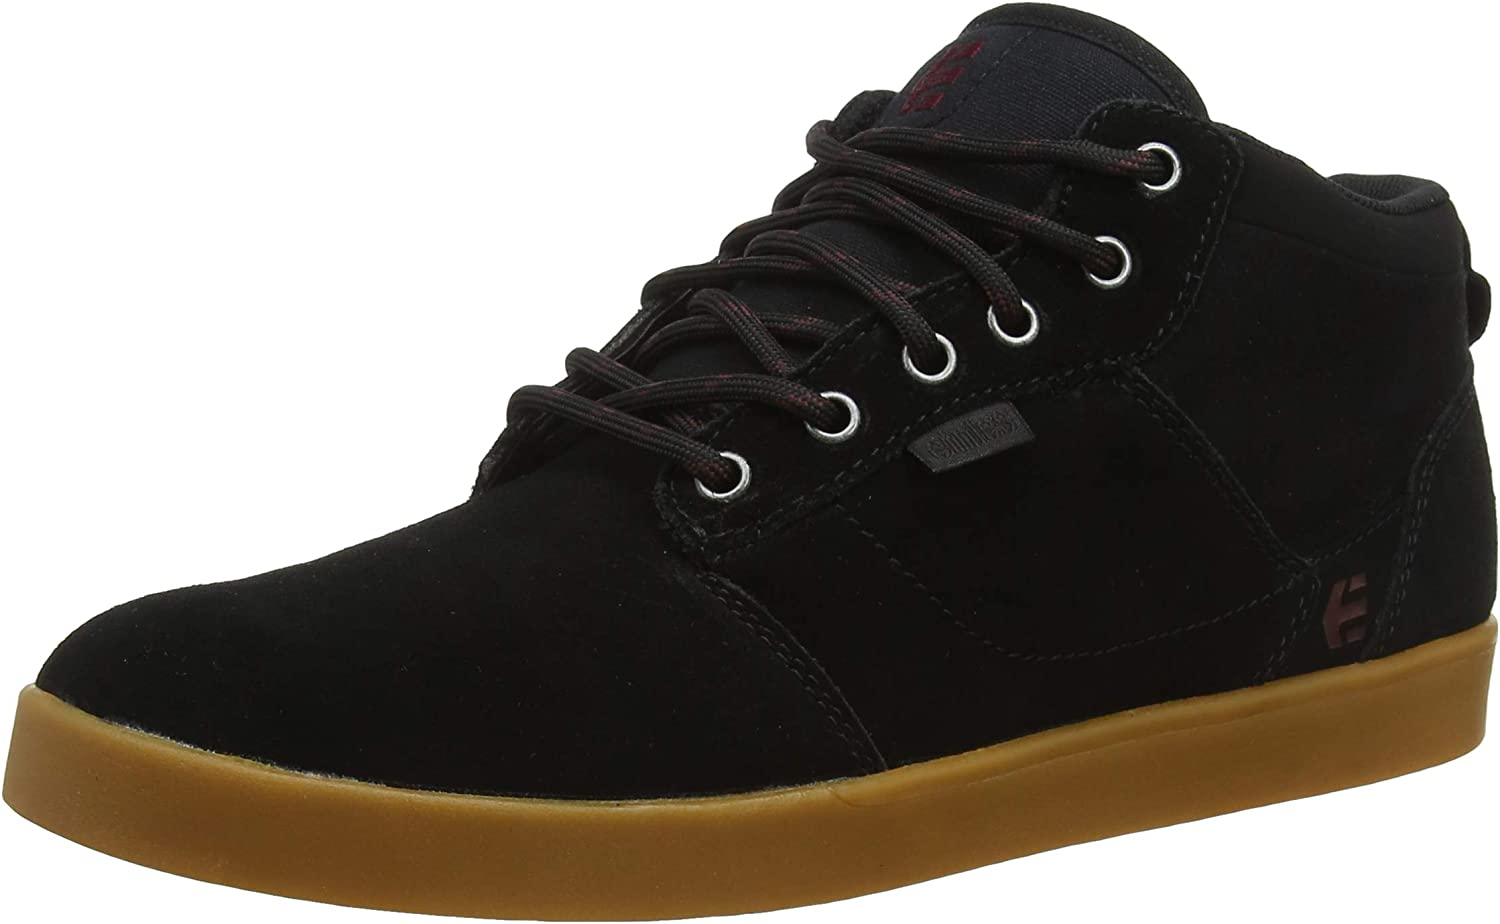 Etnies Jefferson Mid Winter Boot : Clothing, Shoes & Jewelry